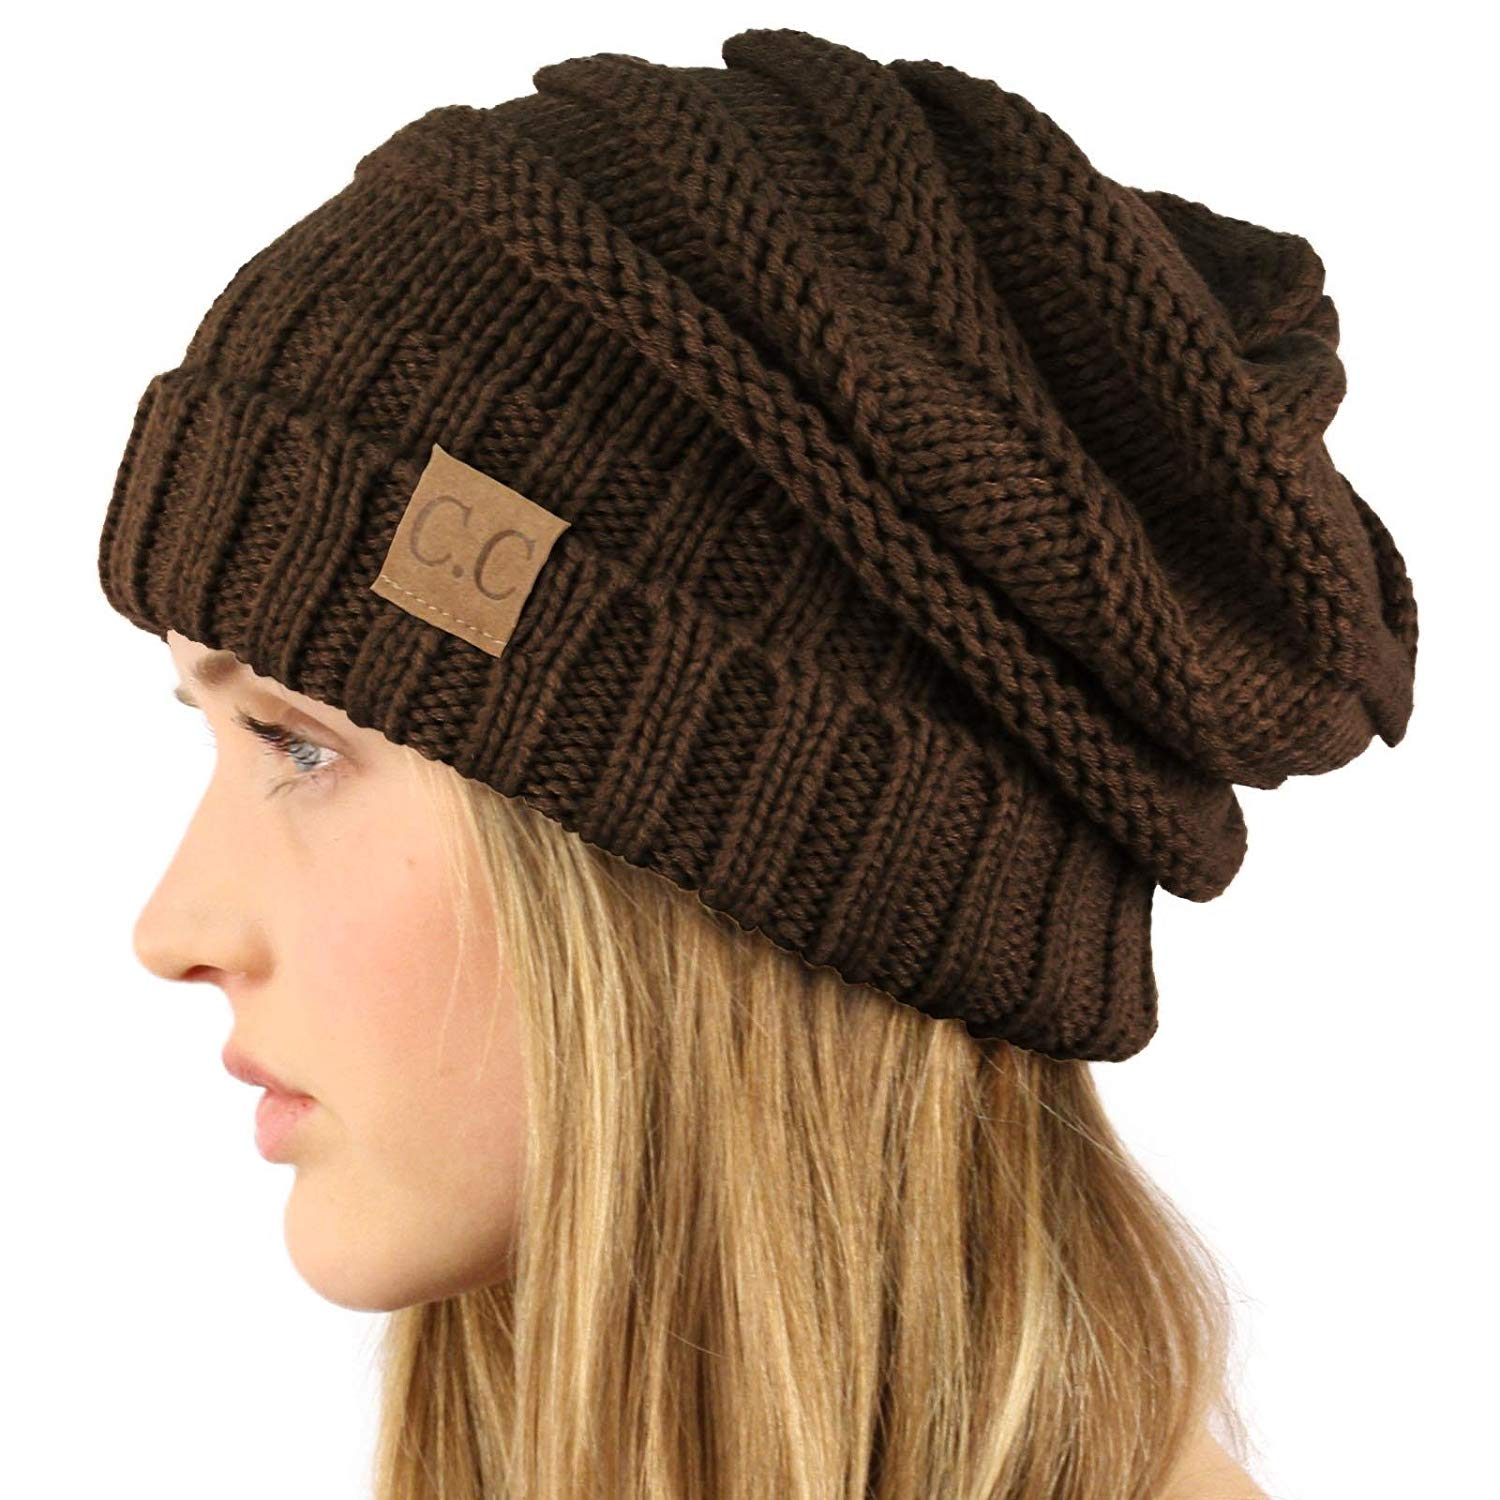 16d38cce7c4 Get Quotations · SK Hat shop Oversized Chunky Thick Soft Stretch Knit  Slouch Beanie Skull Ski Hat Cap